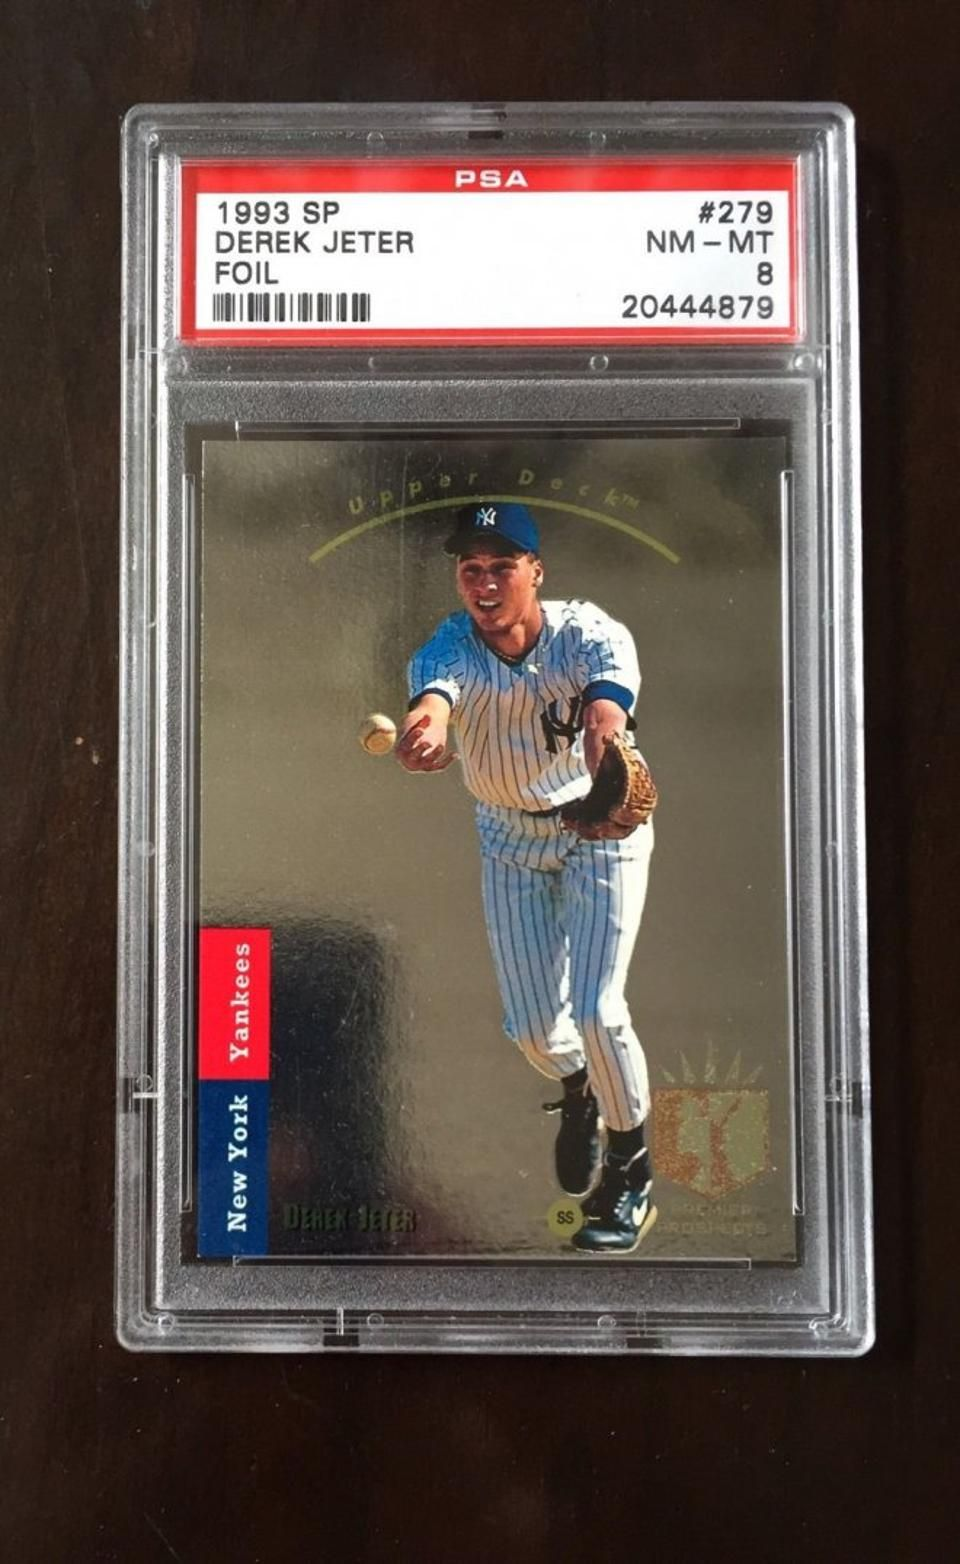 Looking for unique gifts 4 vintage baseball cards on ebay